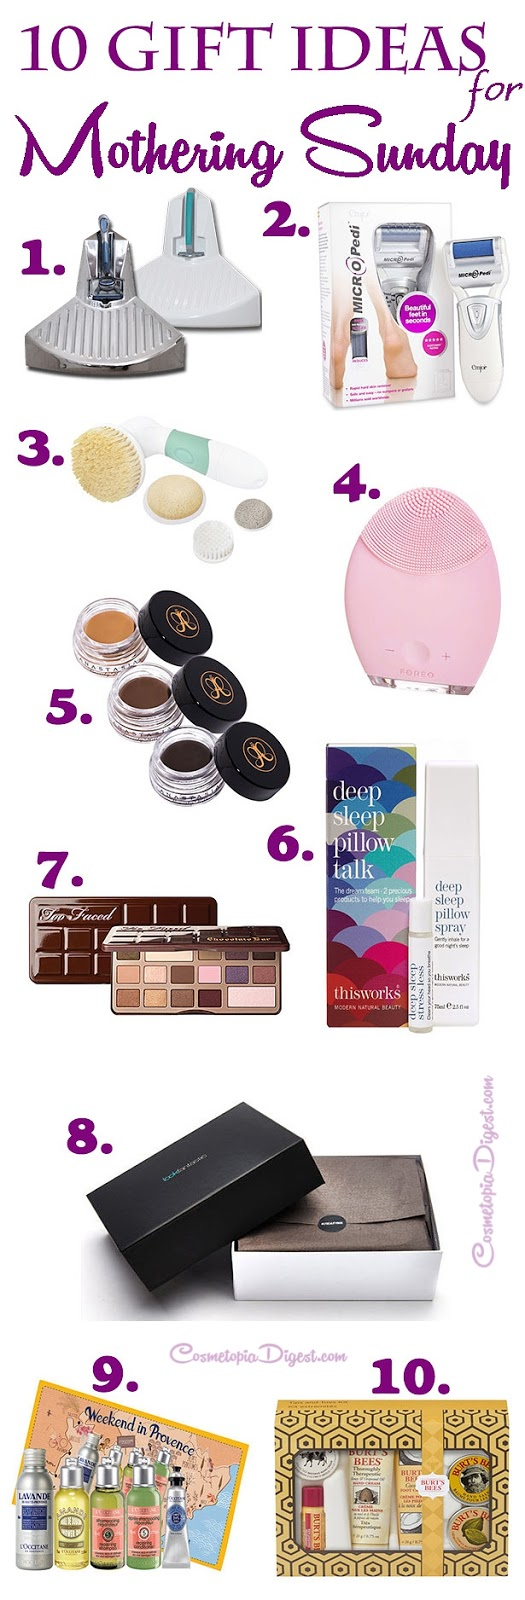 Here are some great beauty and skincare gift ideas to treat yourself or your mum on Mothering Sunday!